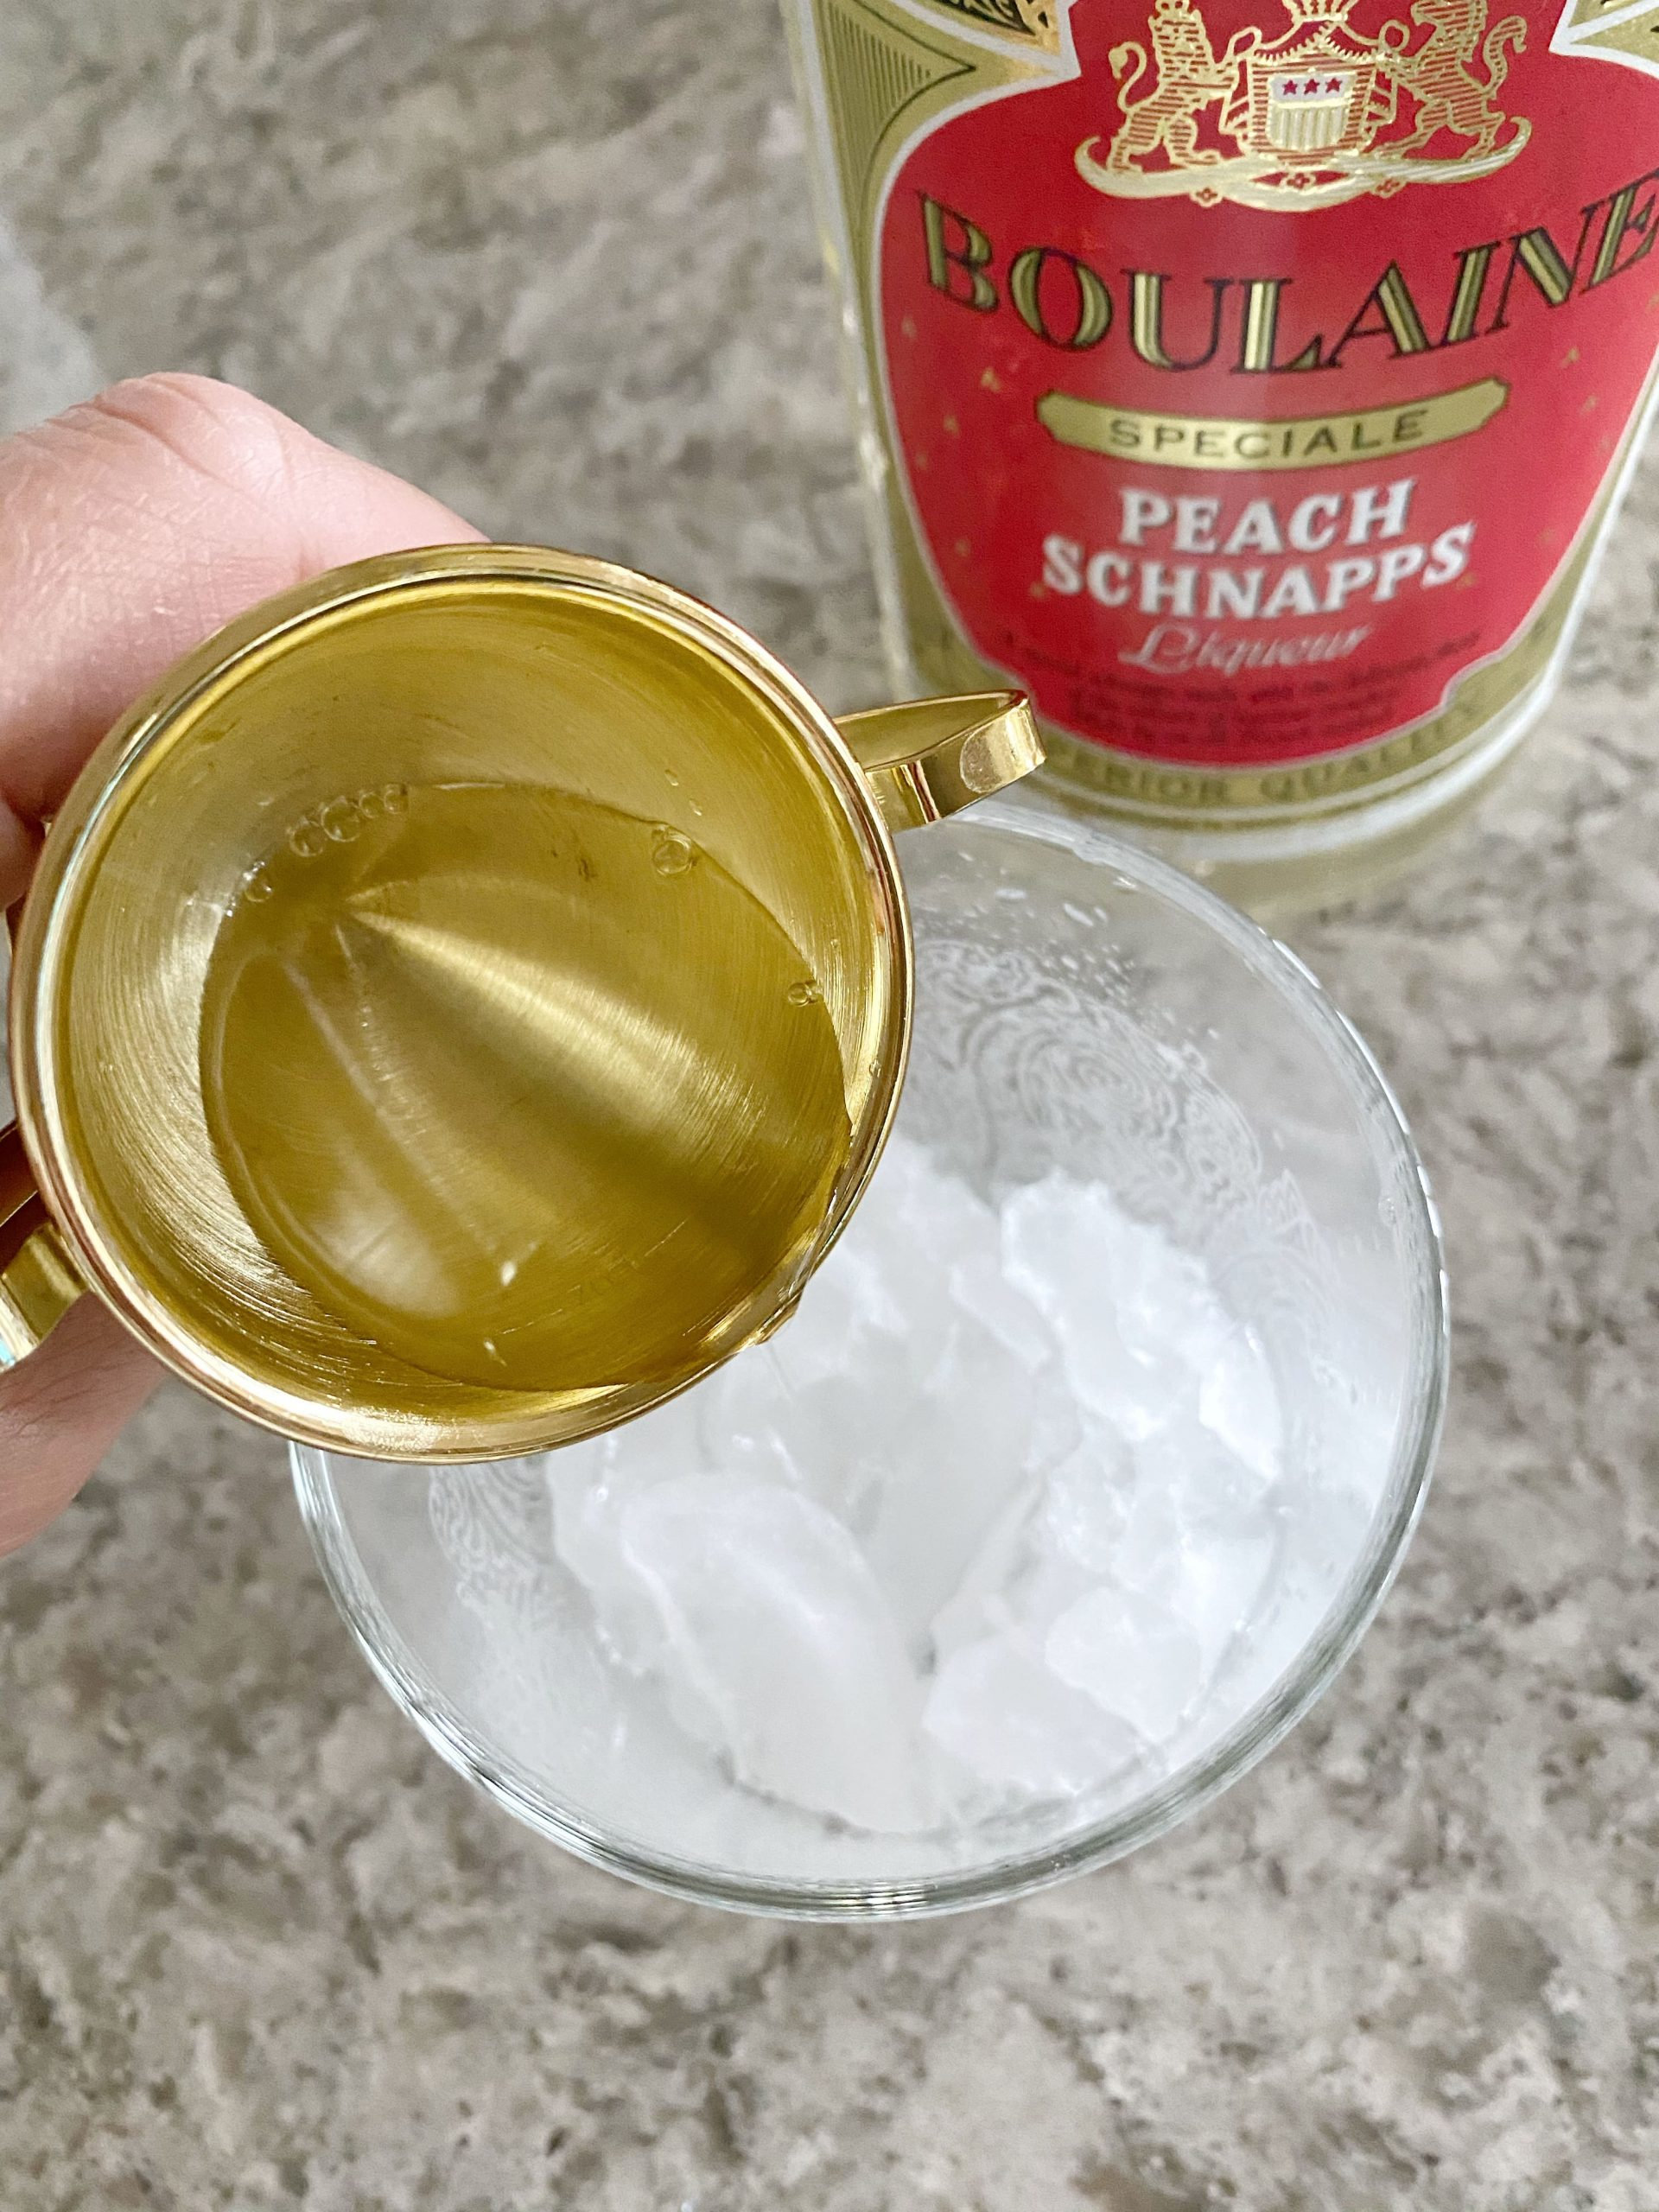 peach schnapps being poured